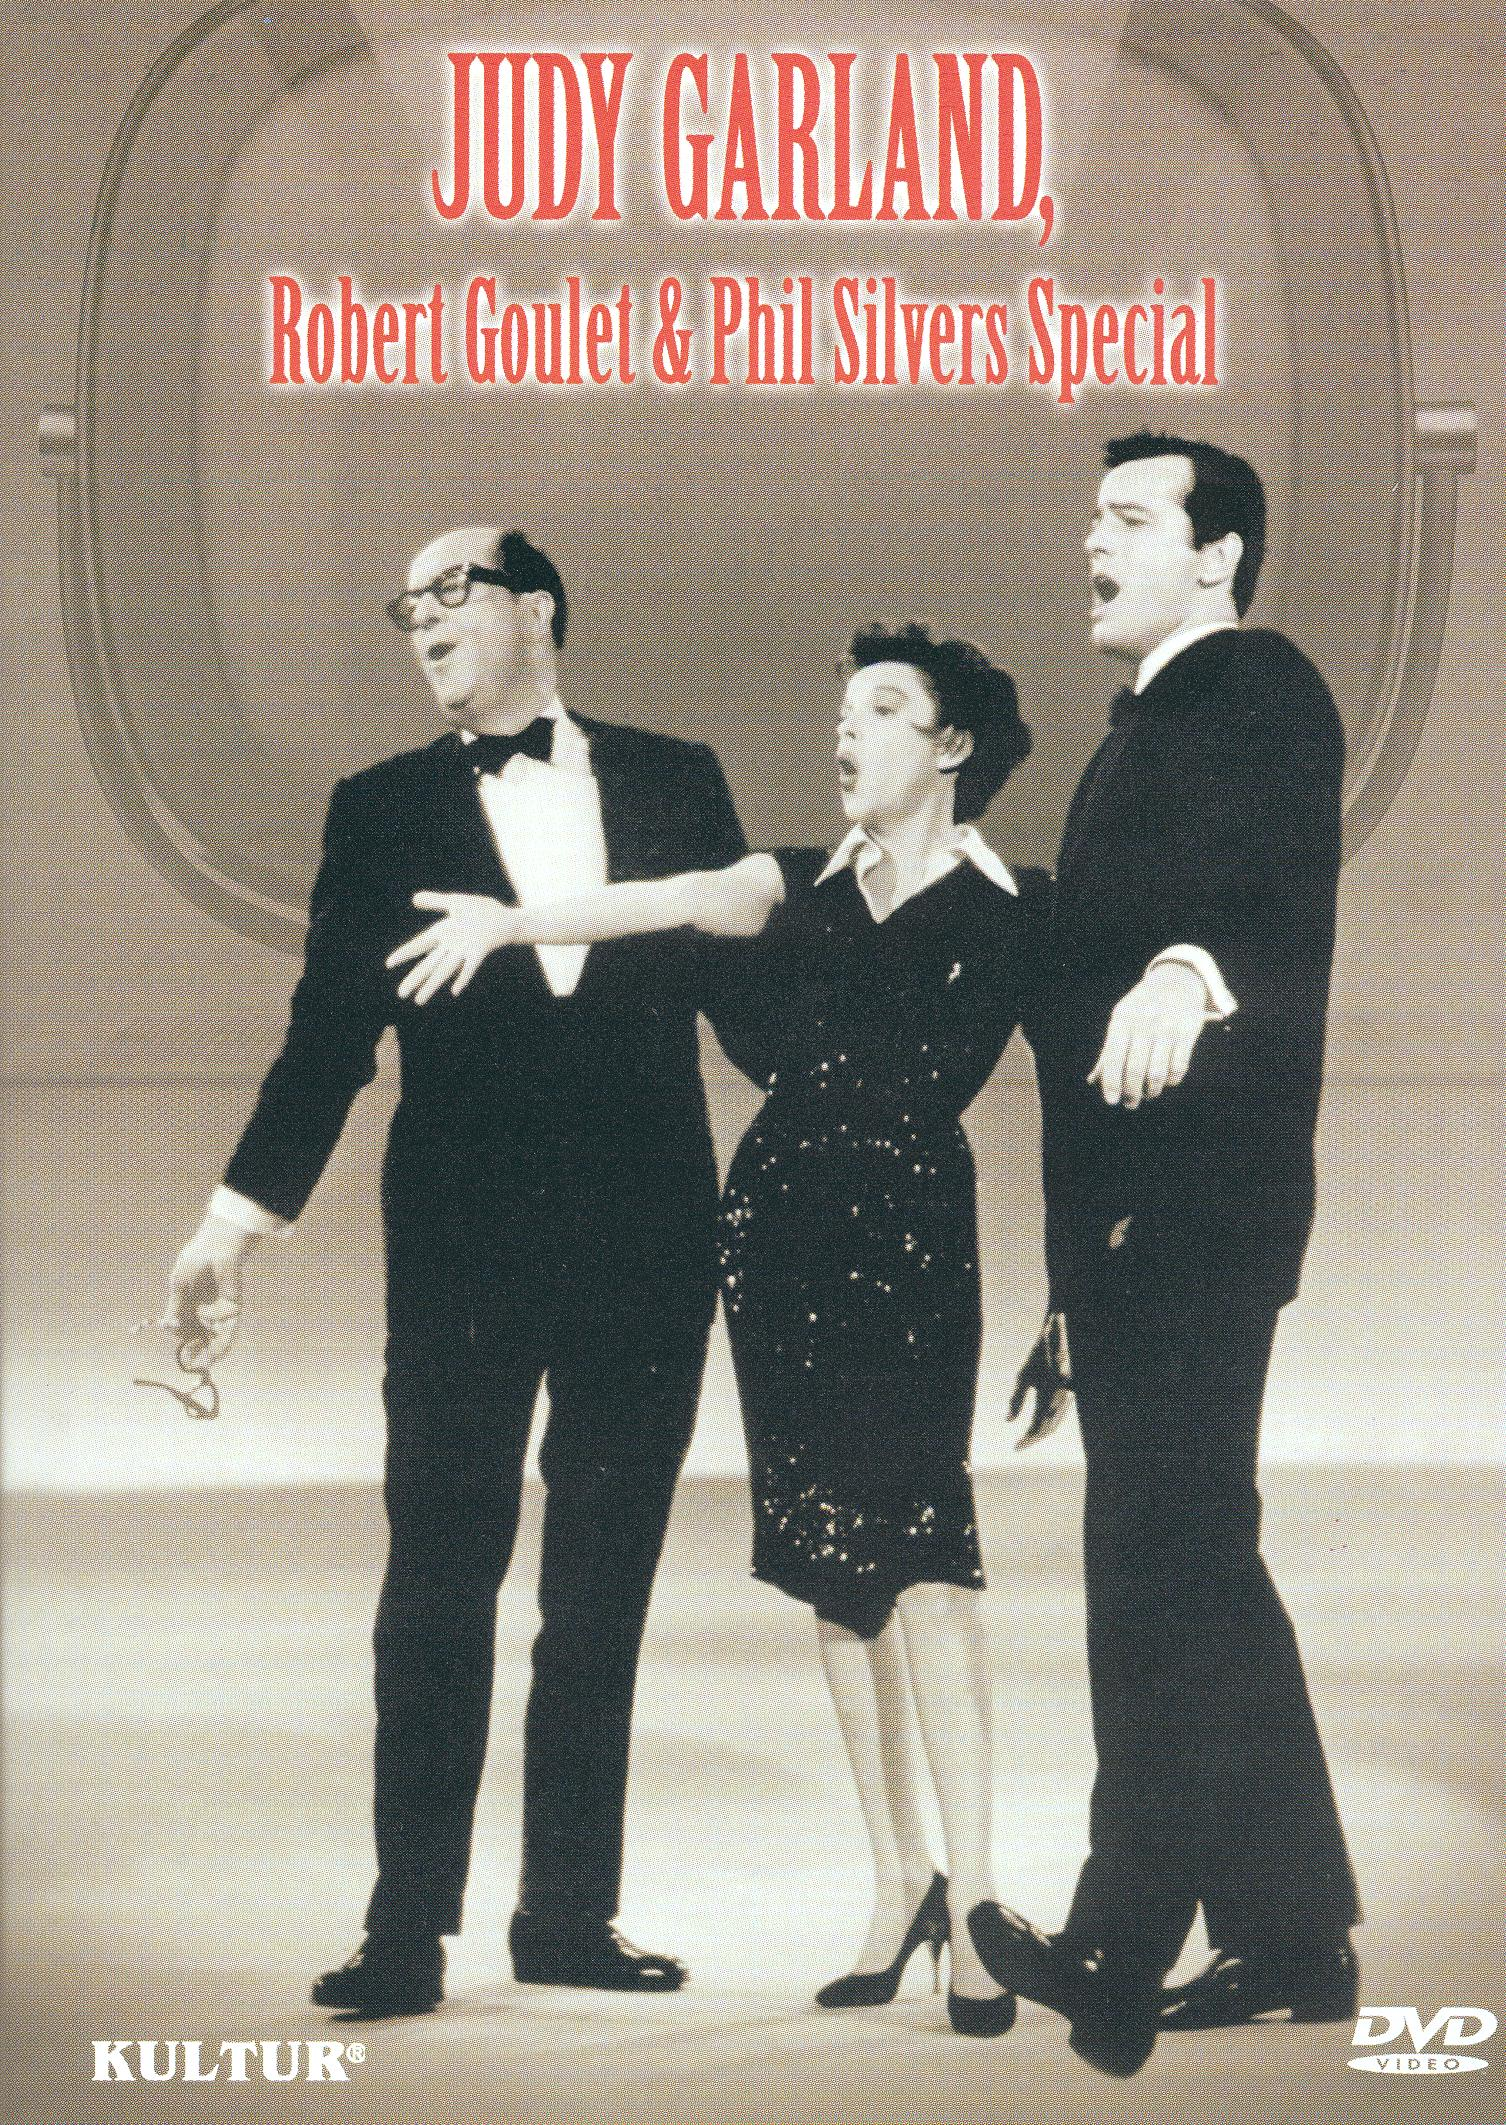 Judy Garland and Her Guests Phil Silvers and Robert Goulet